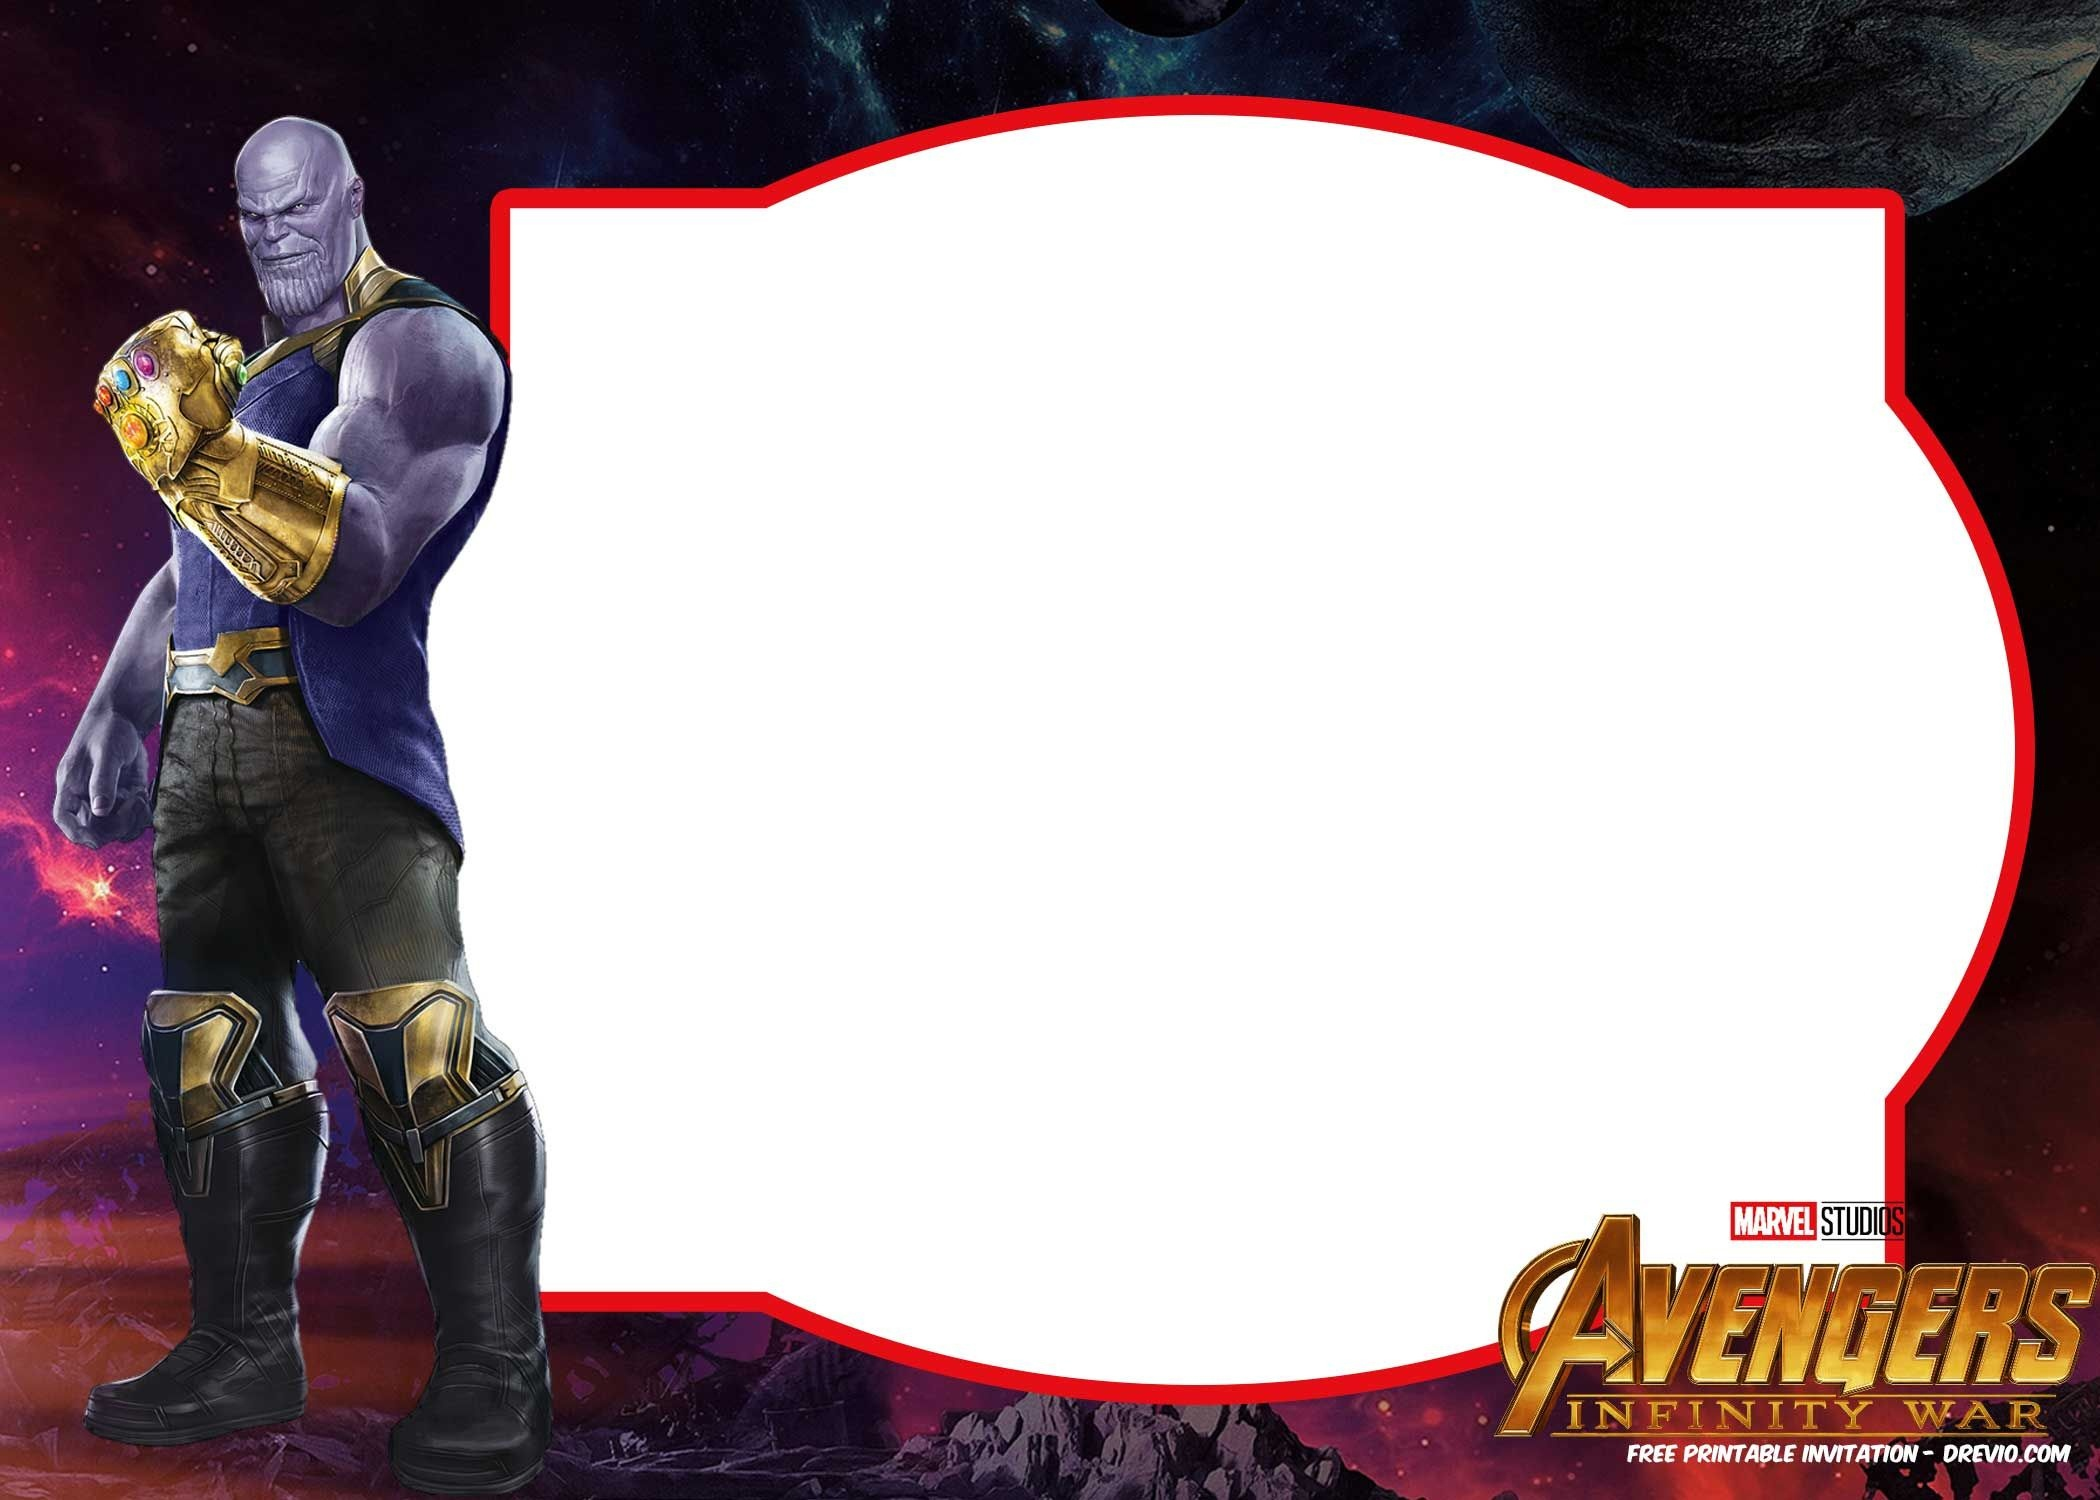 Free Avengers Infinity Wars Birthday Invitation Templates - All - Avengers Printable Invitations Free